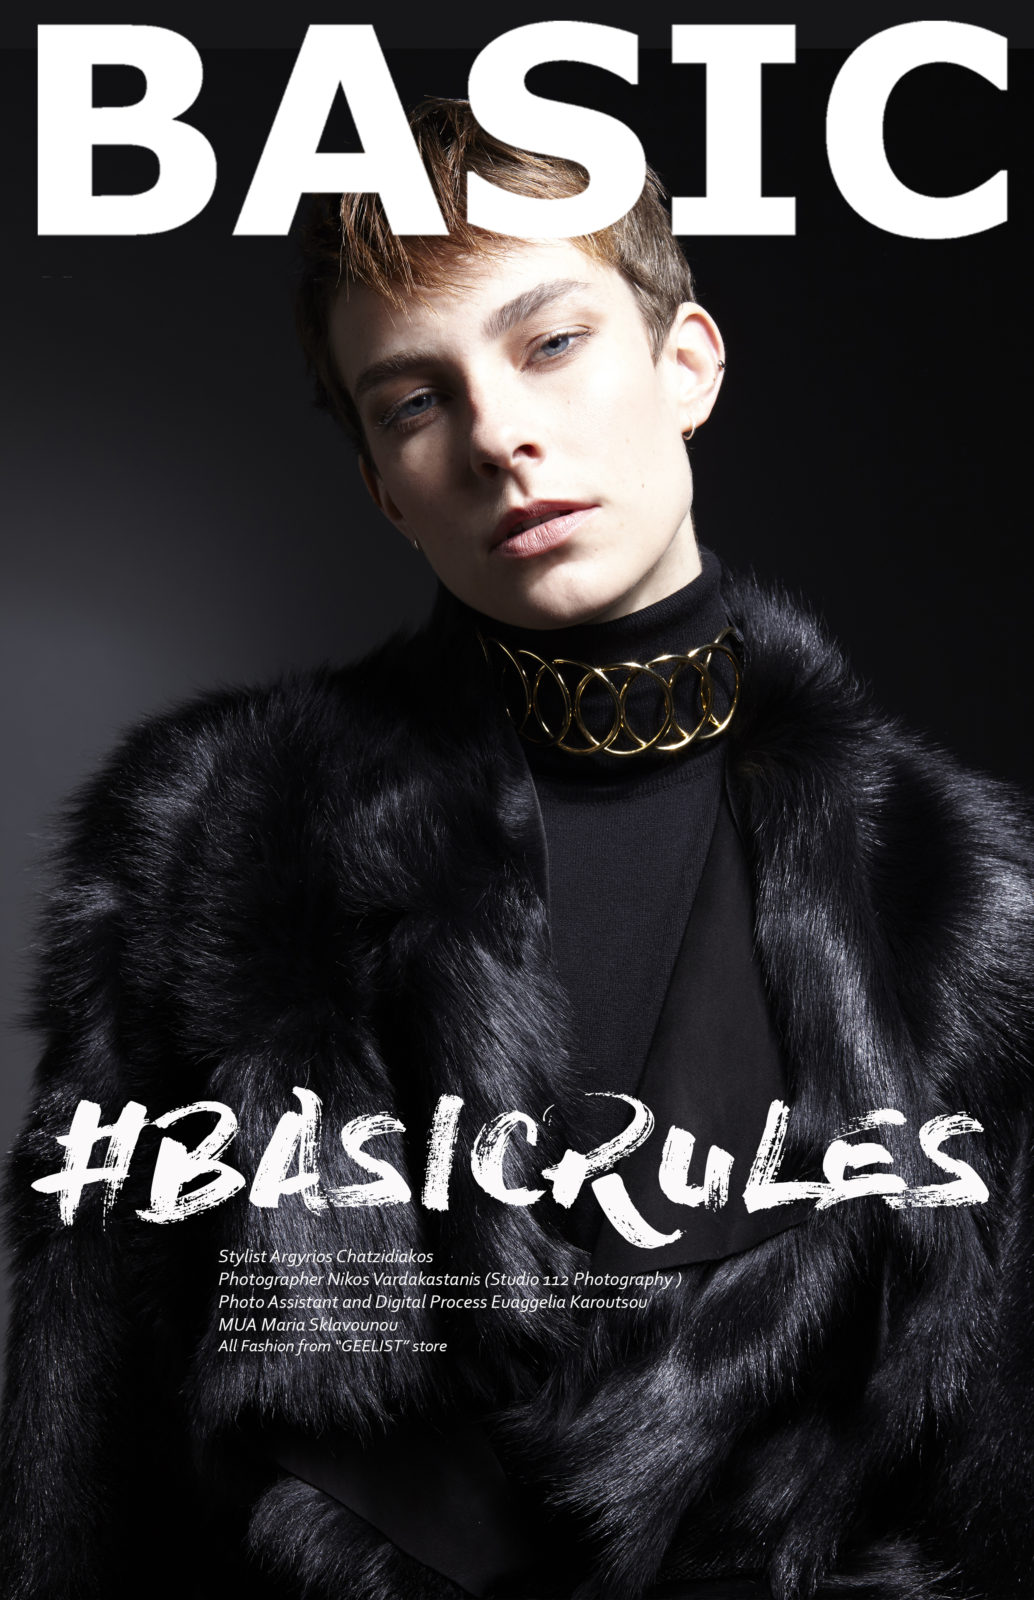 nikos-vardakastanis_basic-magazinefashion6